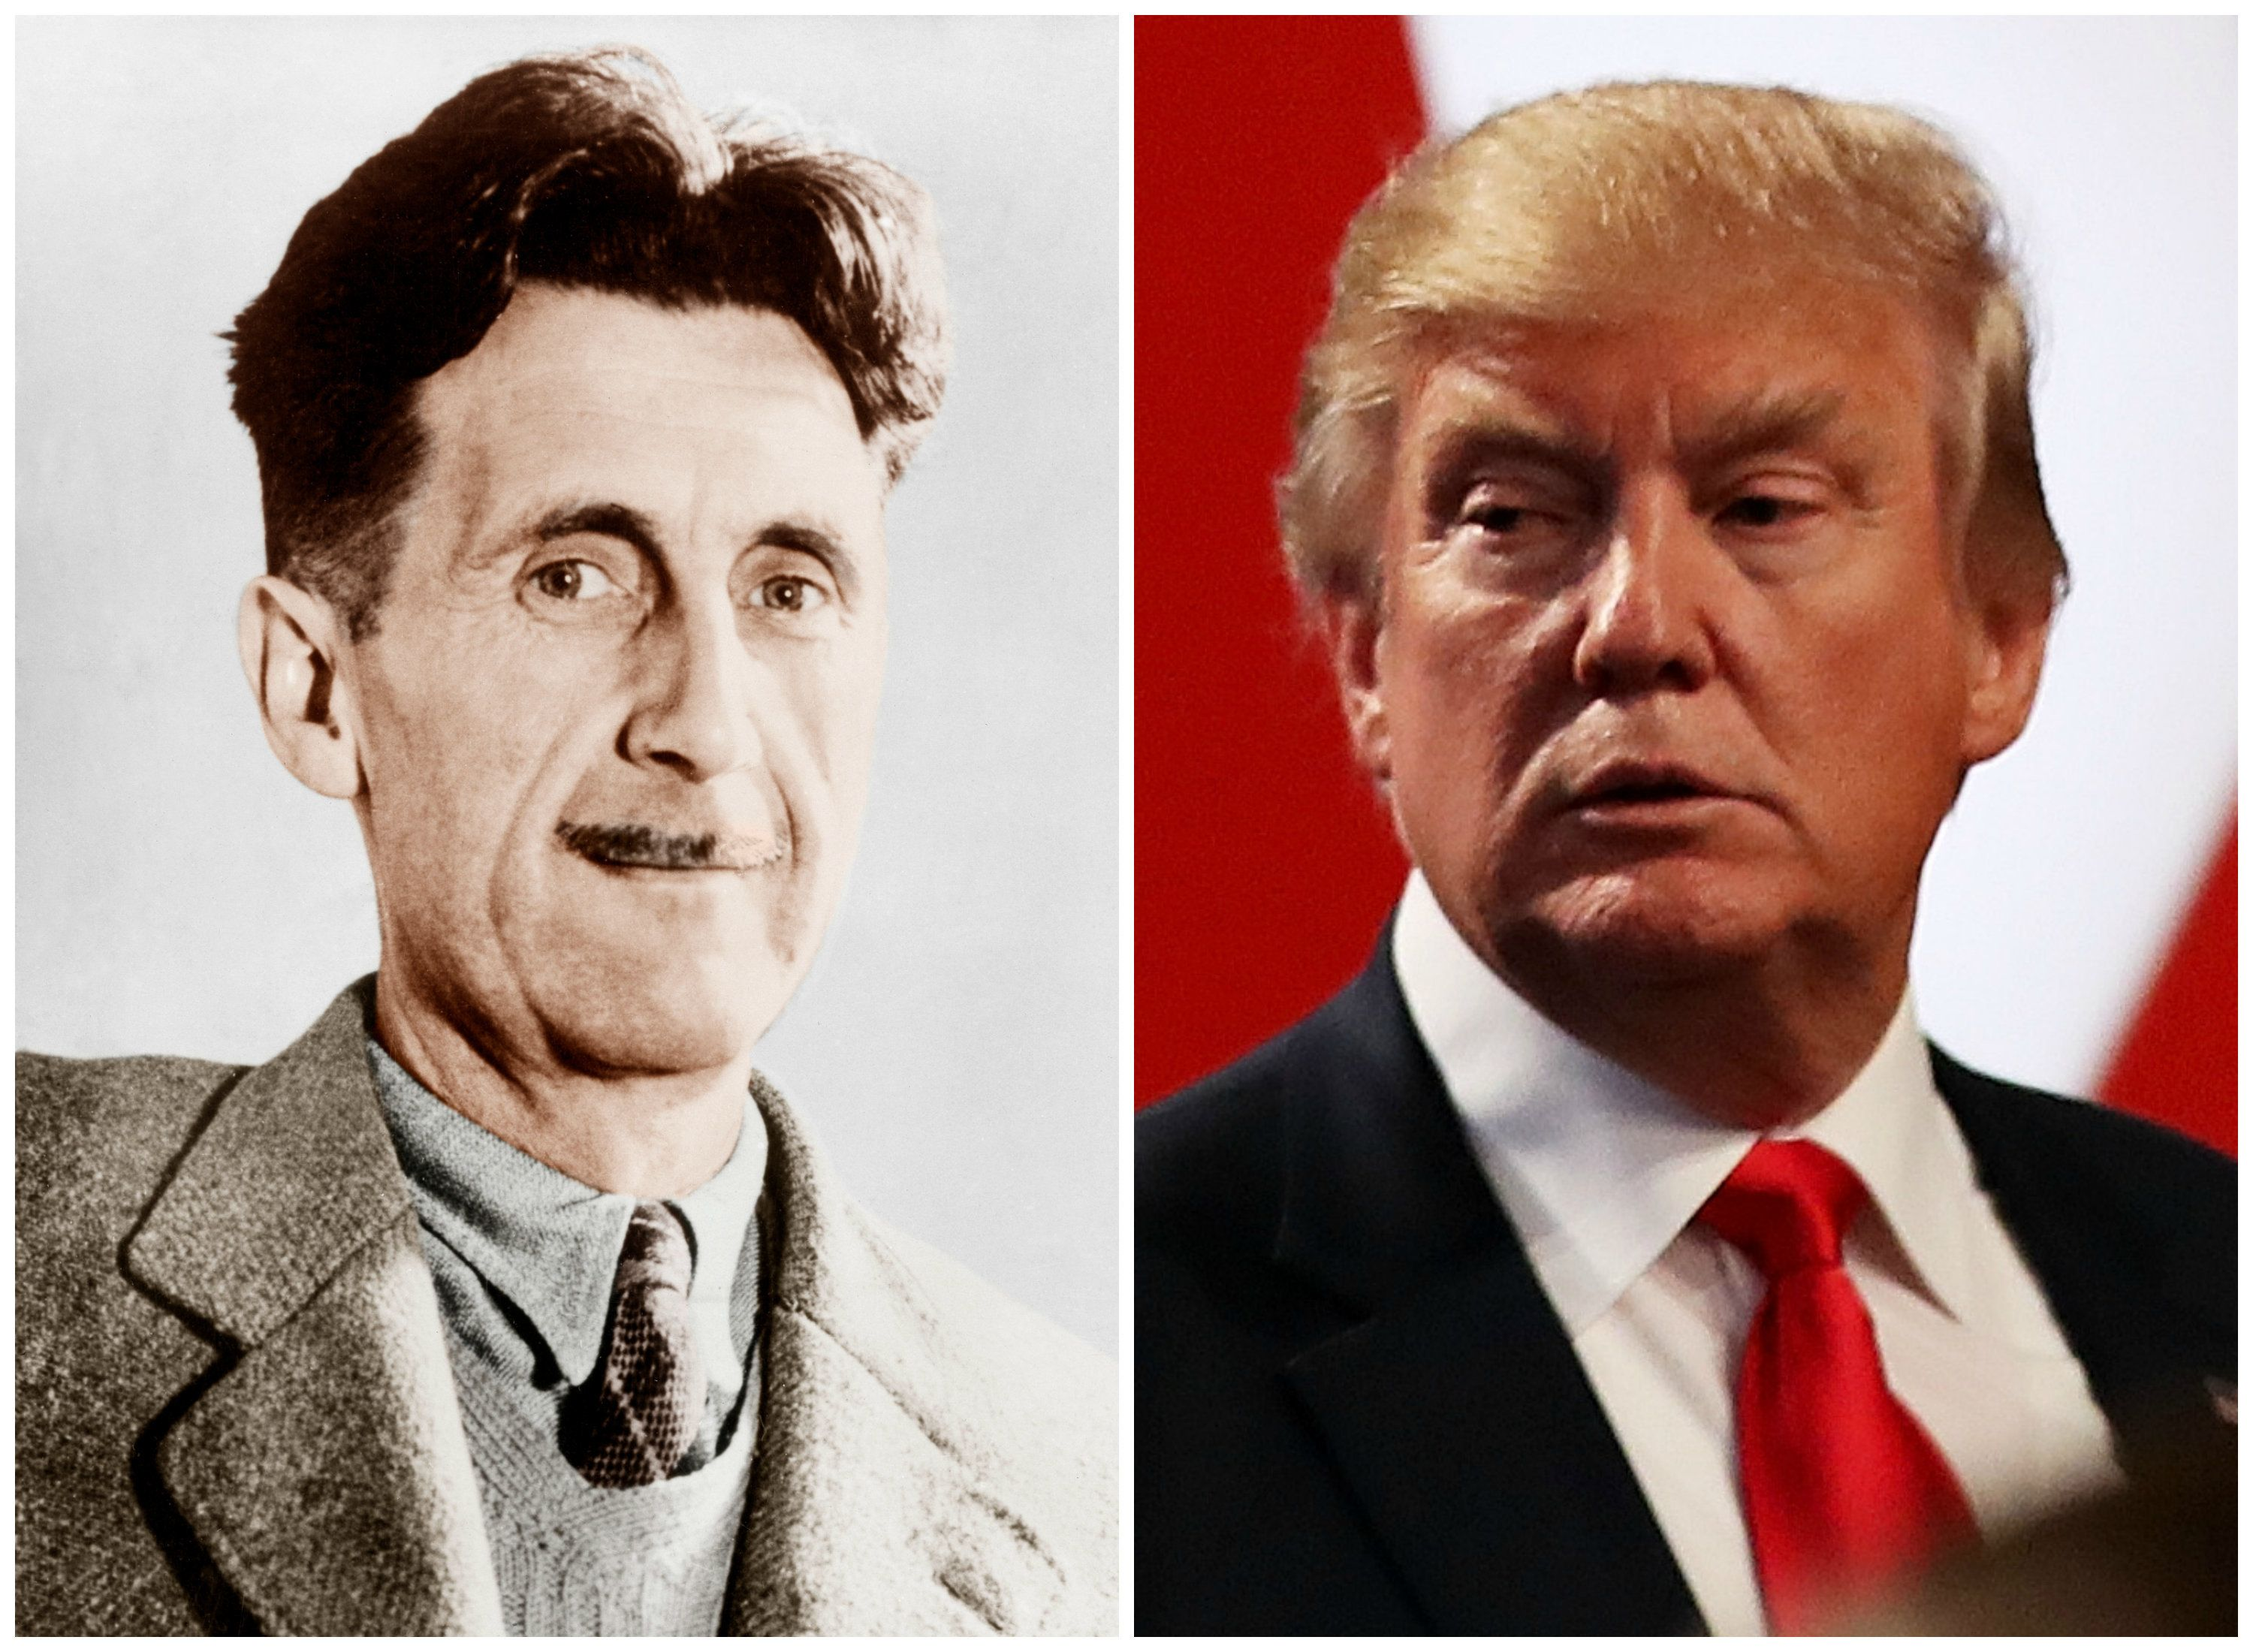 Elegant The Orwell Essay Thatu0027s Even More Pertinent Than U00271984u0027 Right Now | HuffPost